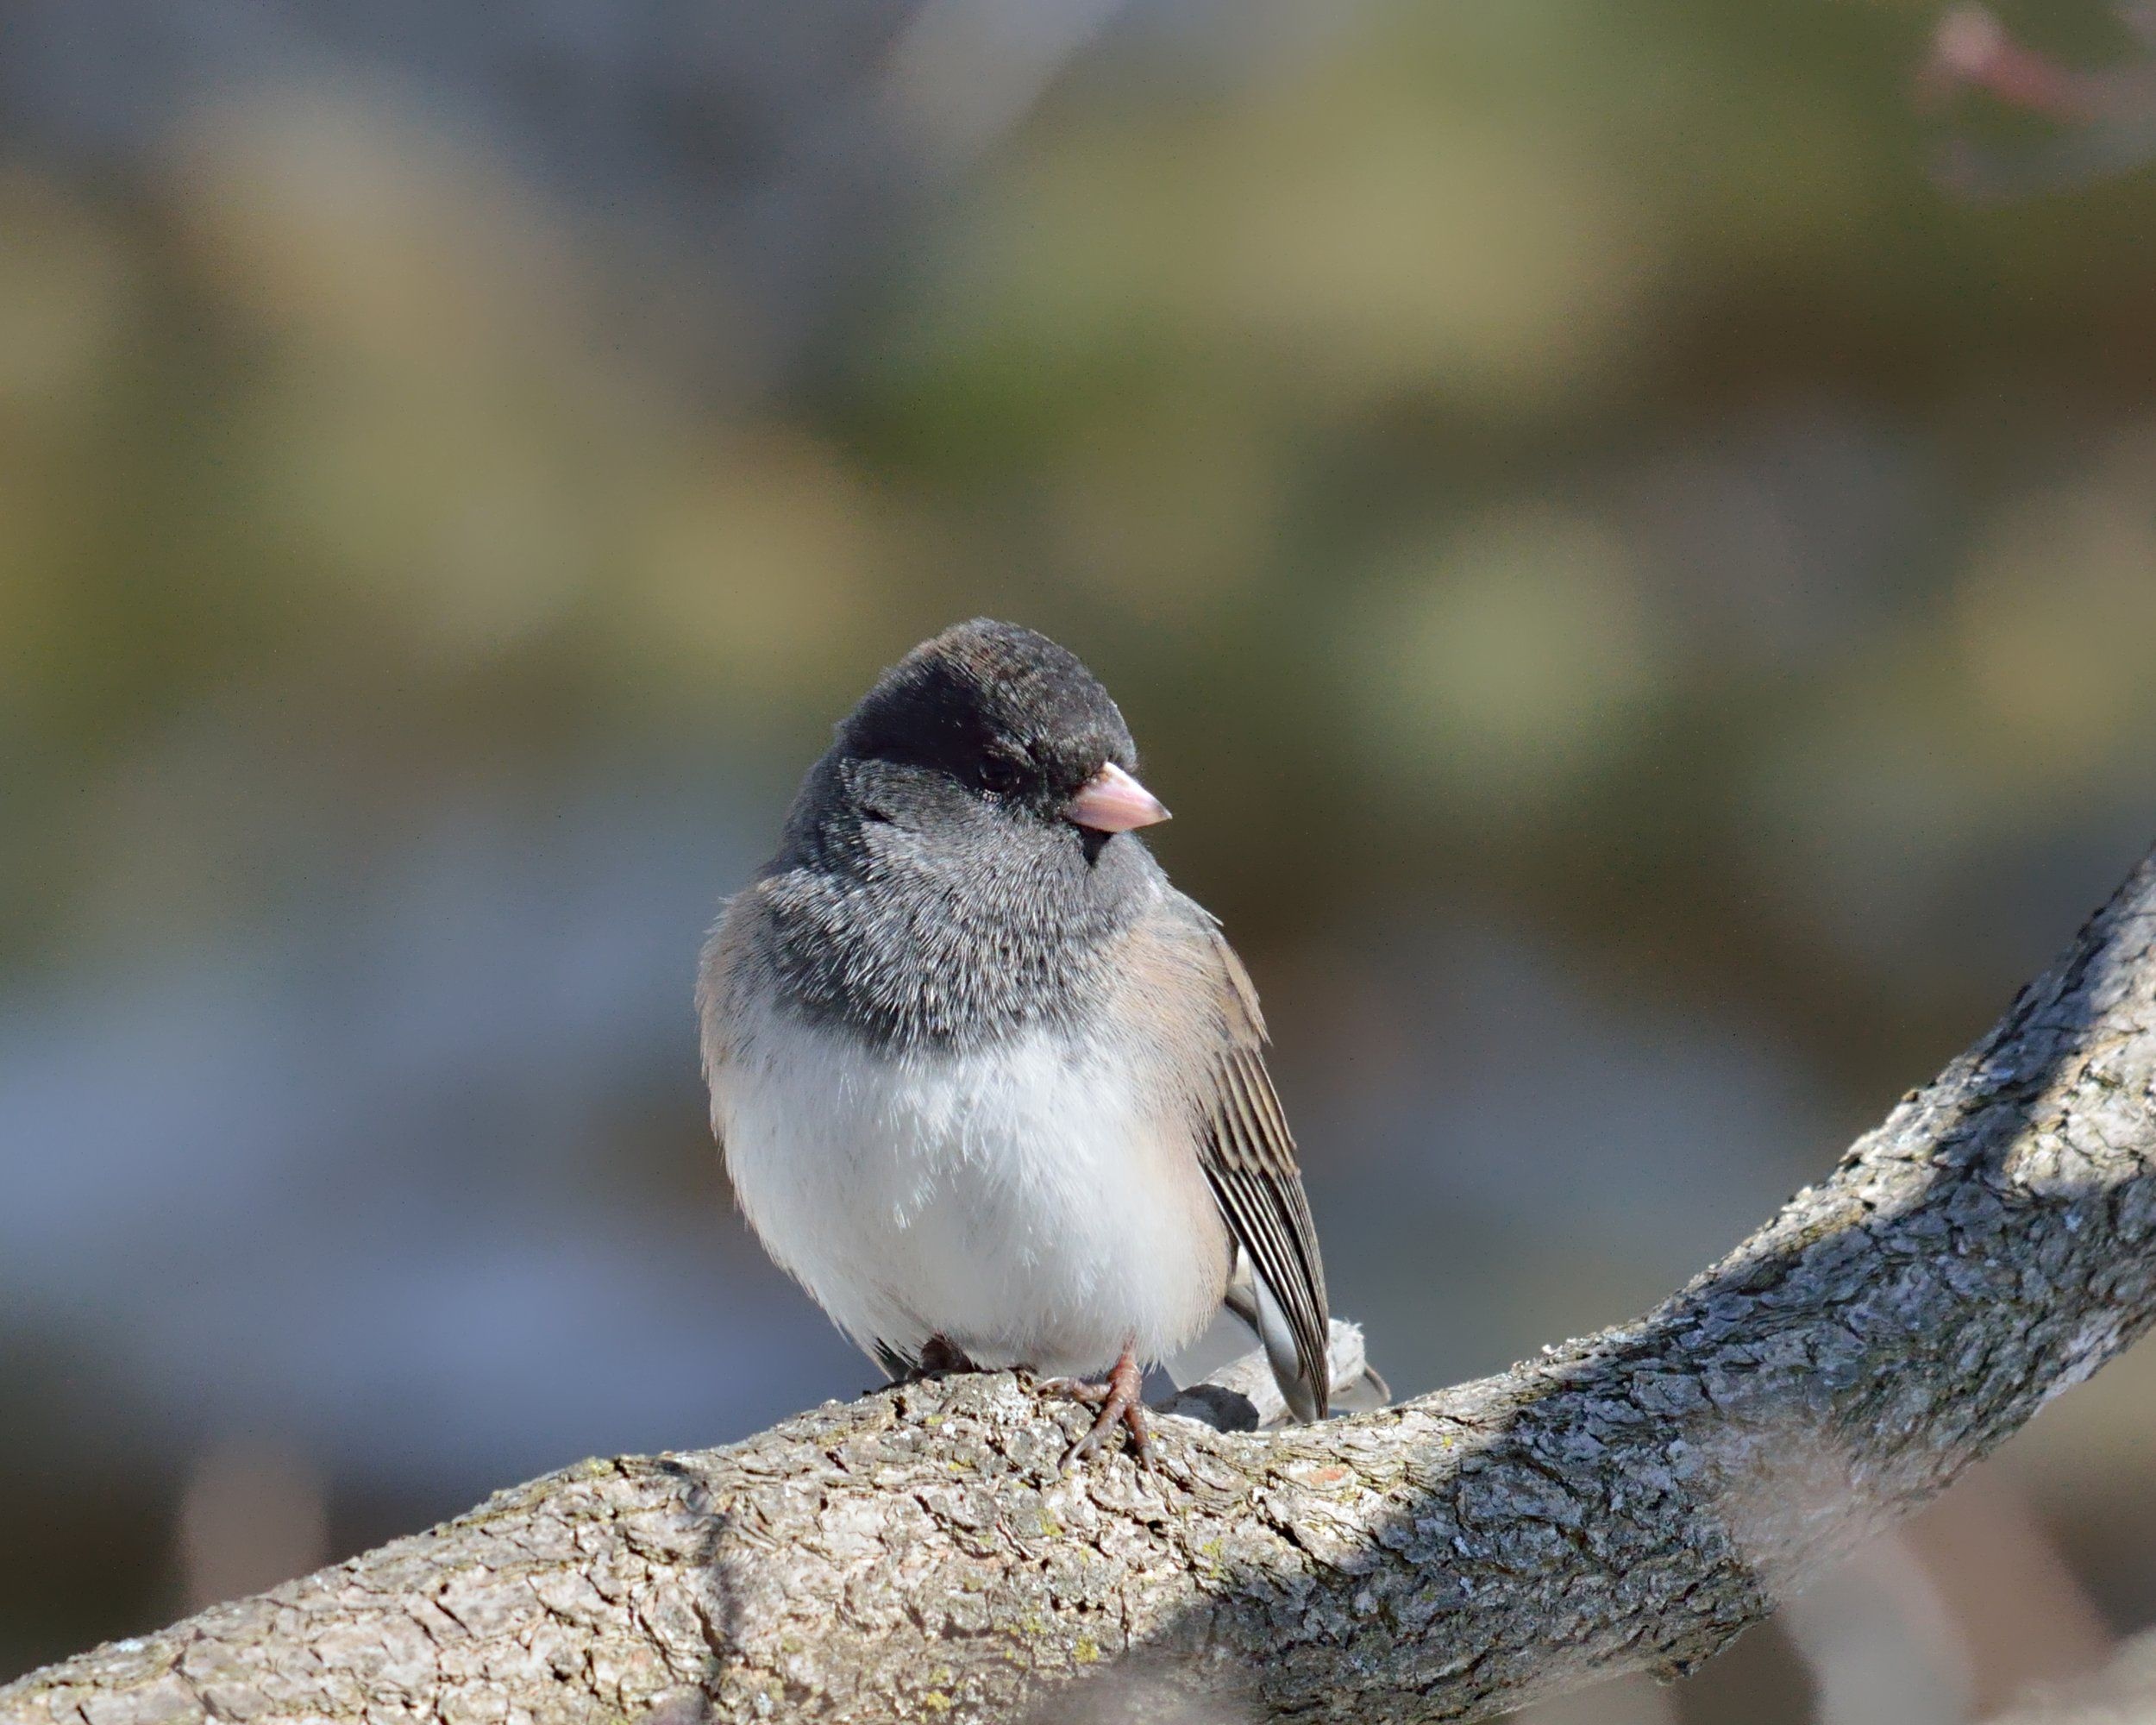 """On New Year's Day I found some time to go outside and watch birds. As I sat on the porch, a few of them flew right up to the feeders hanging from the eave. This junco sat on a nearby branch for a while and let me snap away!"""